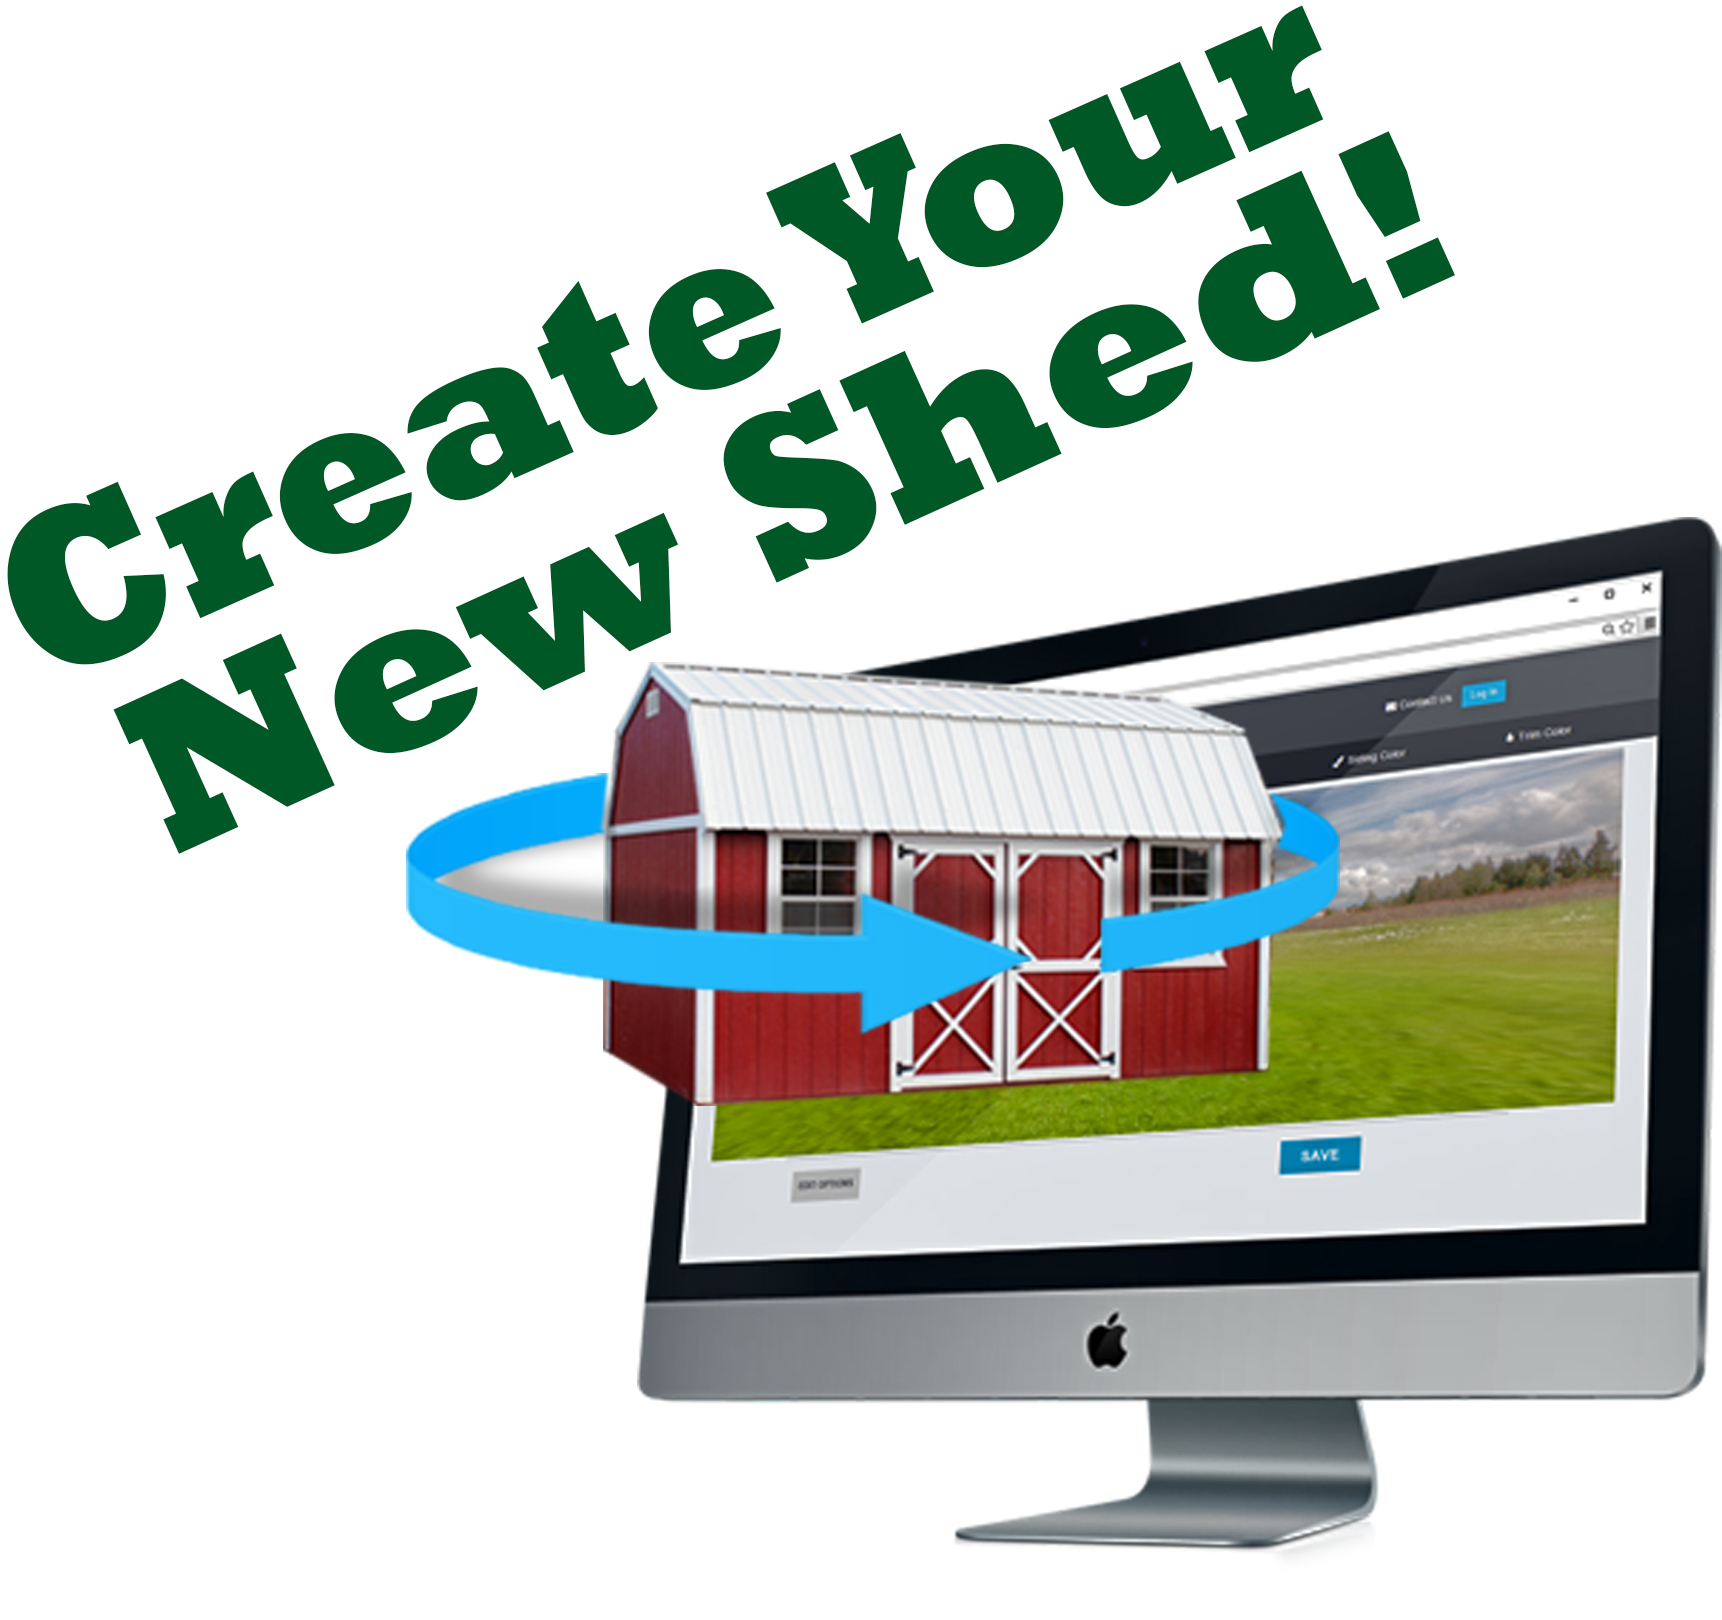 Create your own shed. Customize colors, options, add ons, windows, doors, and more!